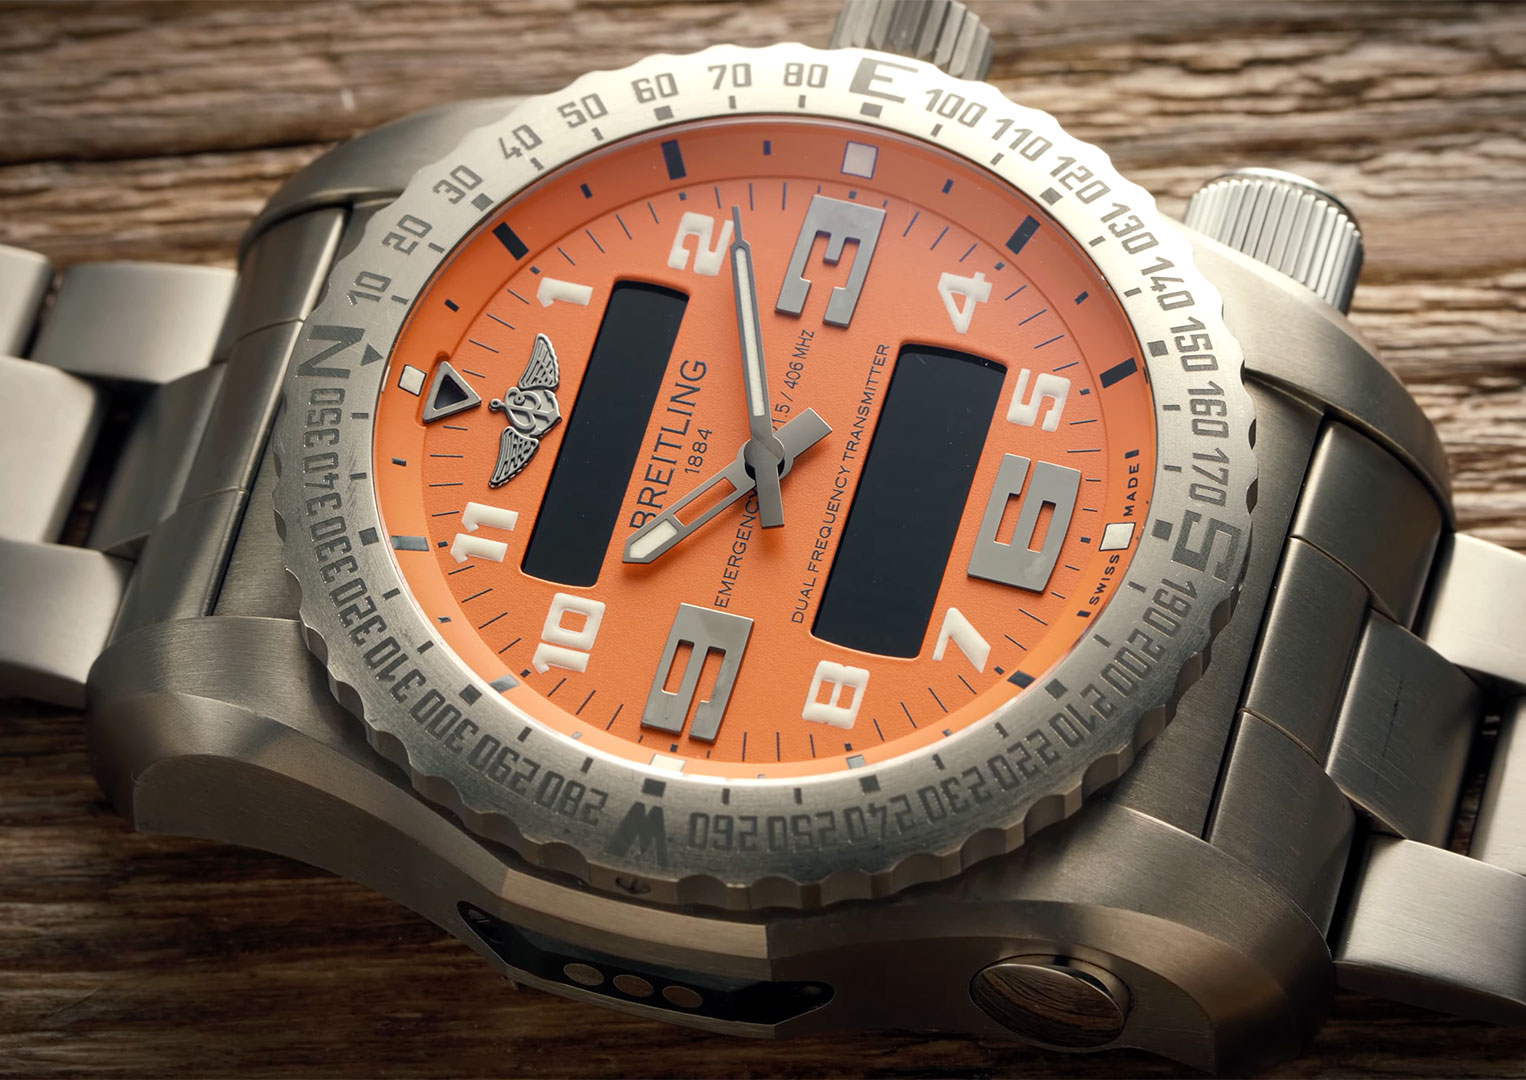 Breitling was founded by Léon Breitling in 1884, St-Imier, Switzerland